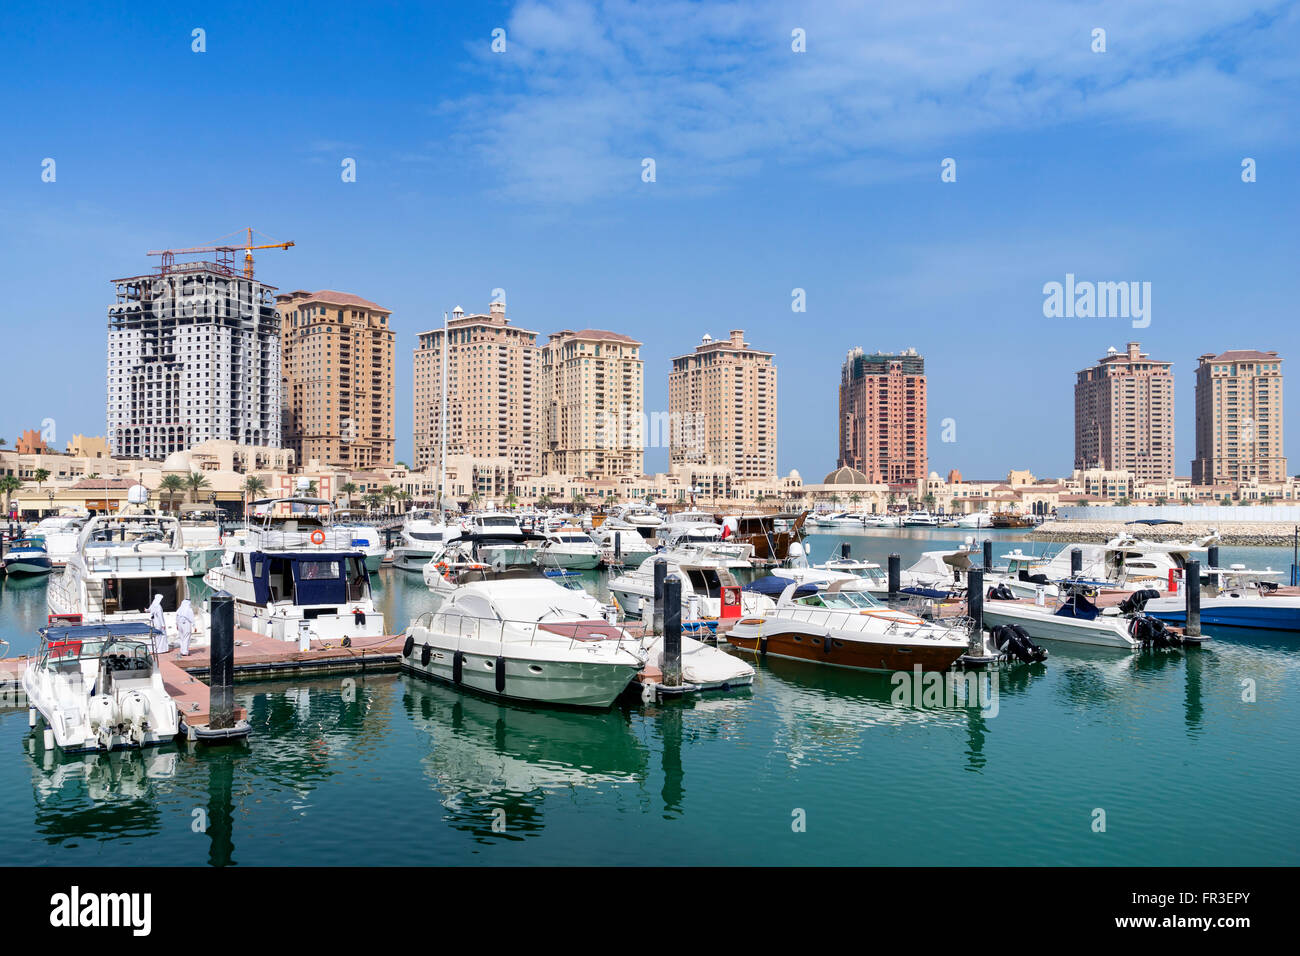 View of marina and apartment buildings at The Pearl luxury new residential property development in Doha Qatar - Stock Image